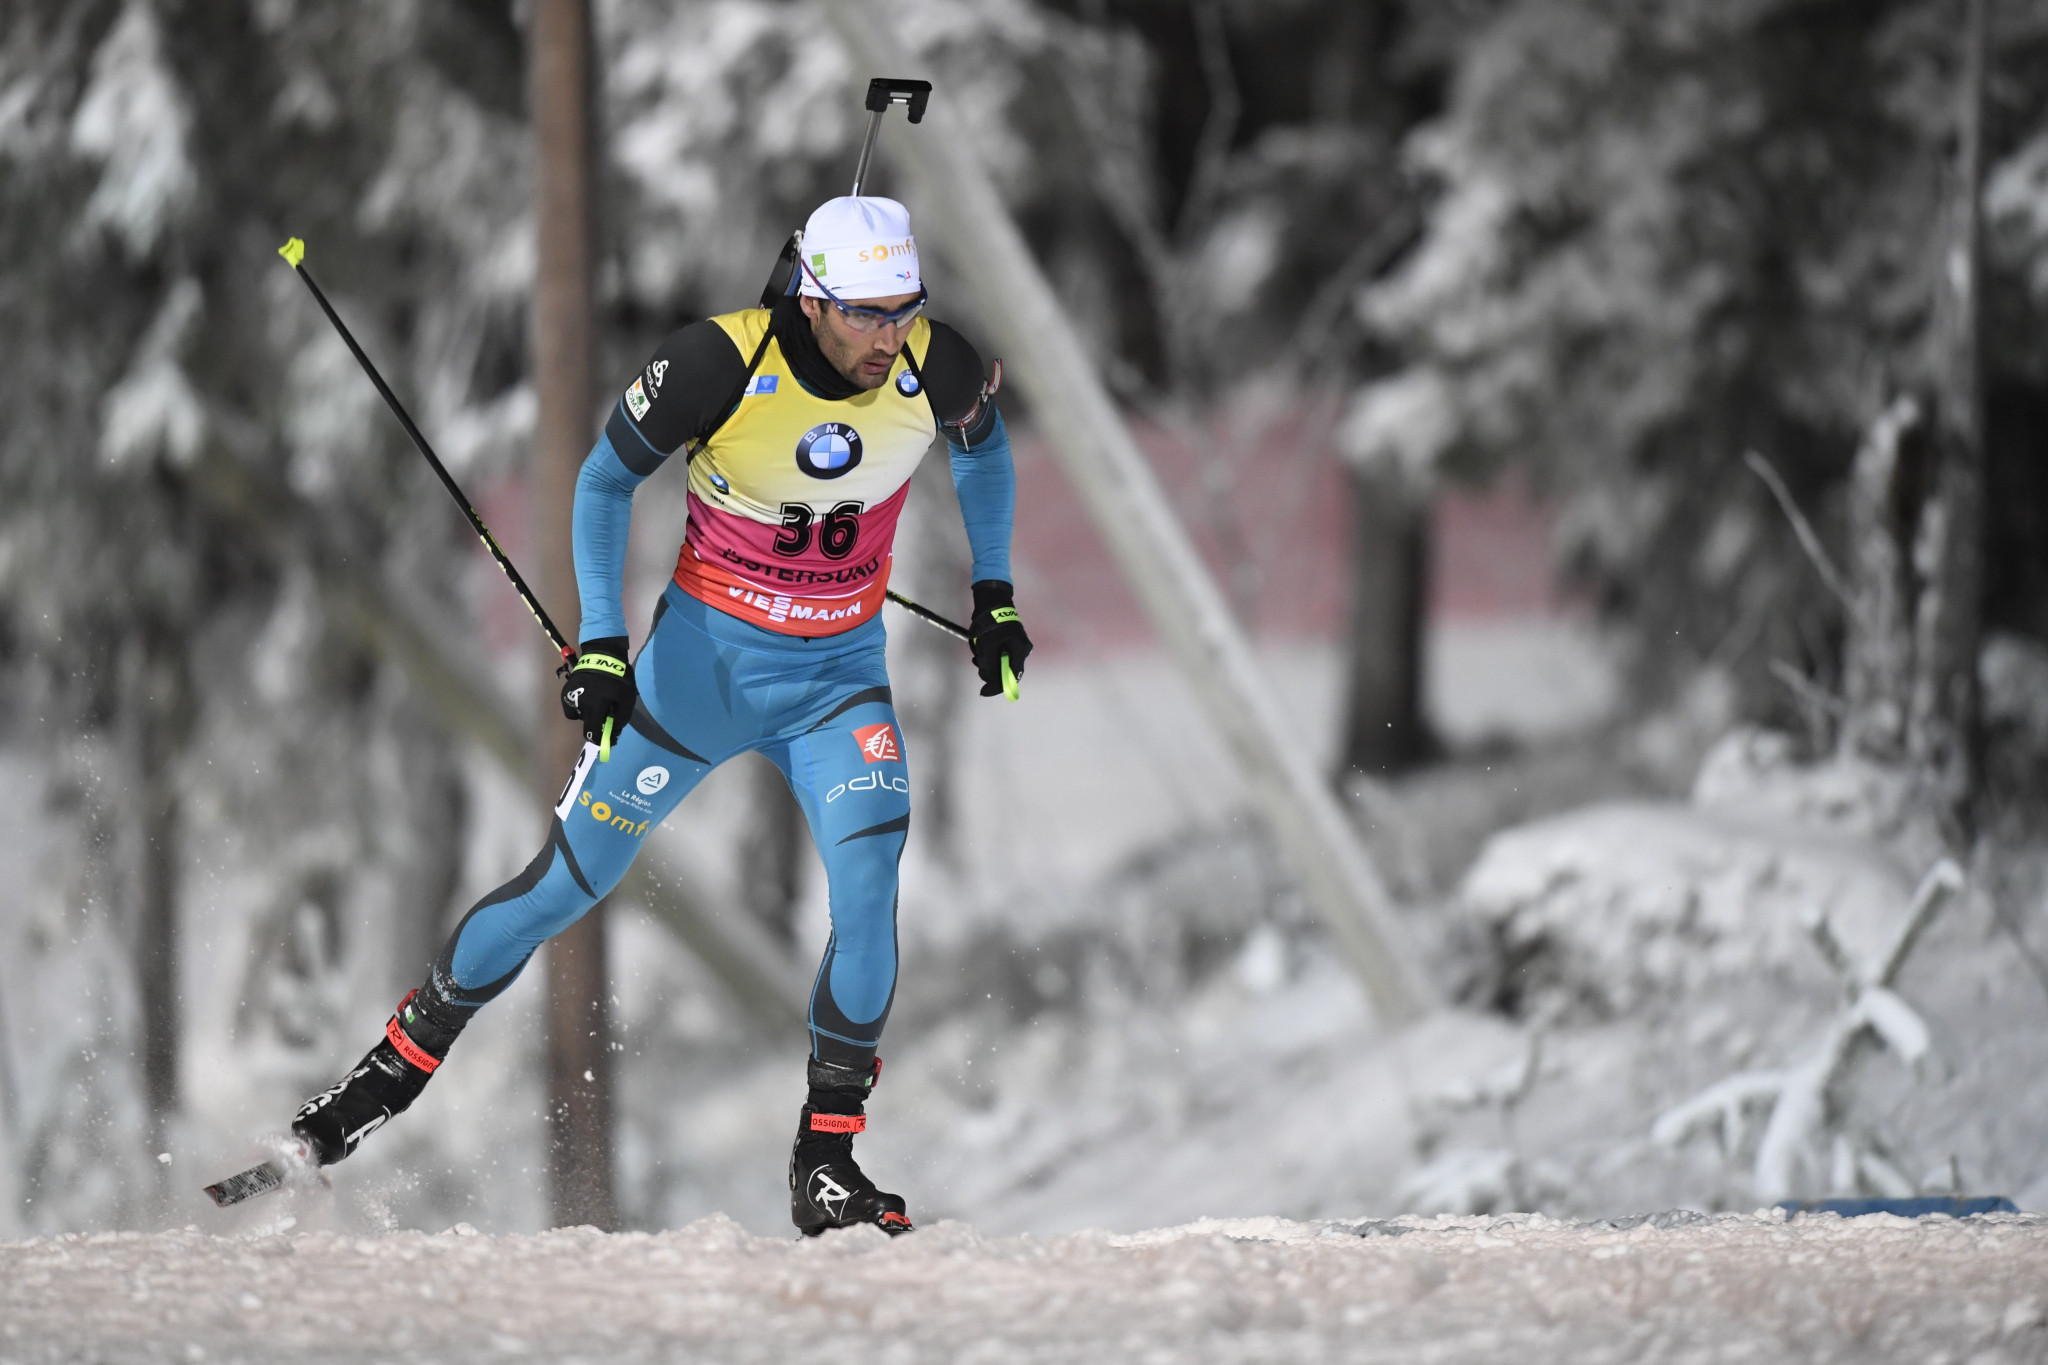 Martin Fourcade admitted he was not 100 per cent as he took bronze ©Getty Images